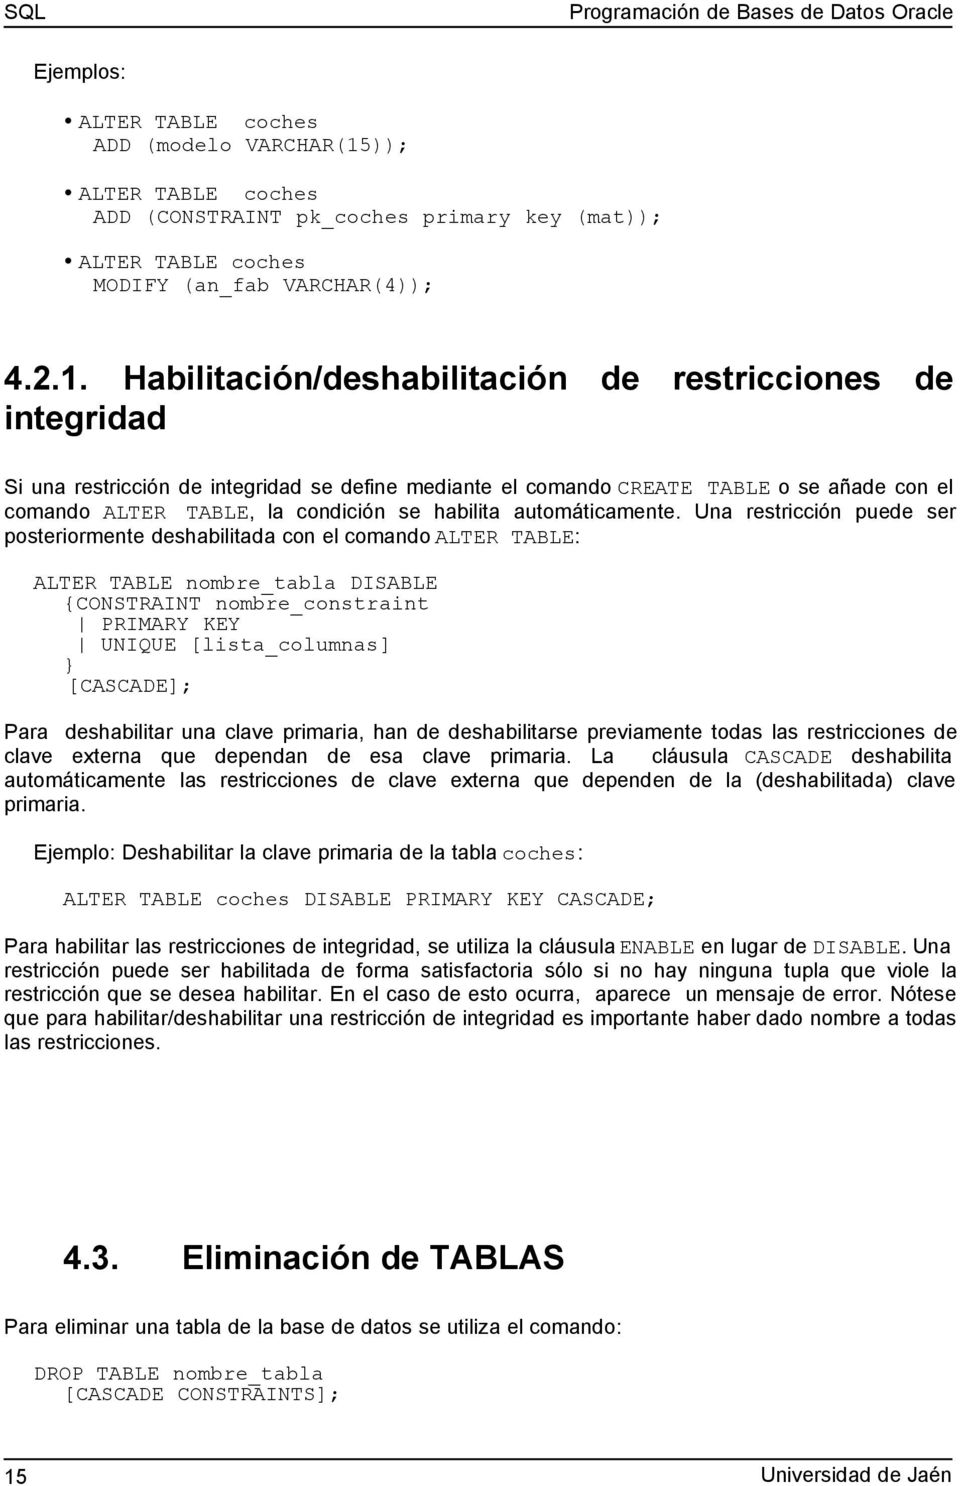 Habilitación/deshabilitación de restricciones de integridad Si una restricción de integridad se define mediante el comando CREATE TABLE o se añade con el comando ALTER TABLE, la condición se habilita